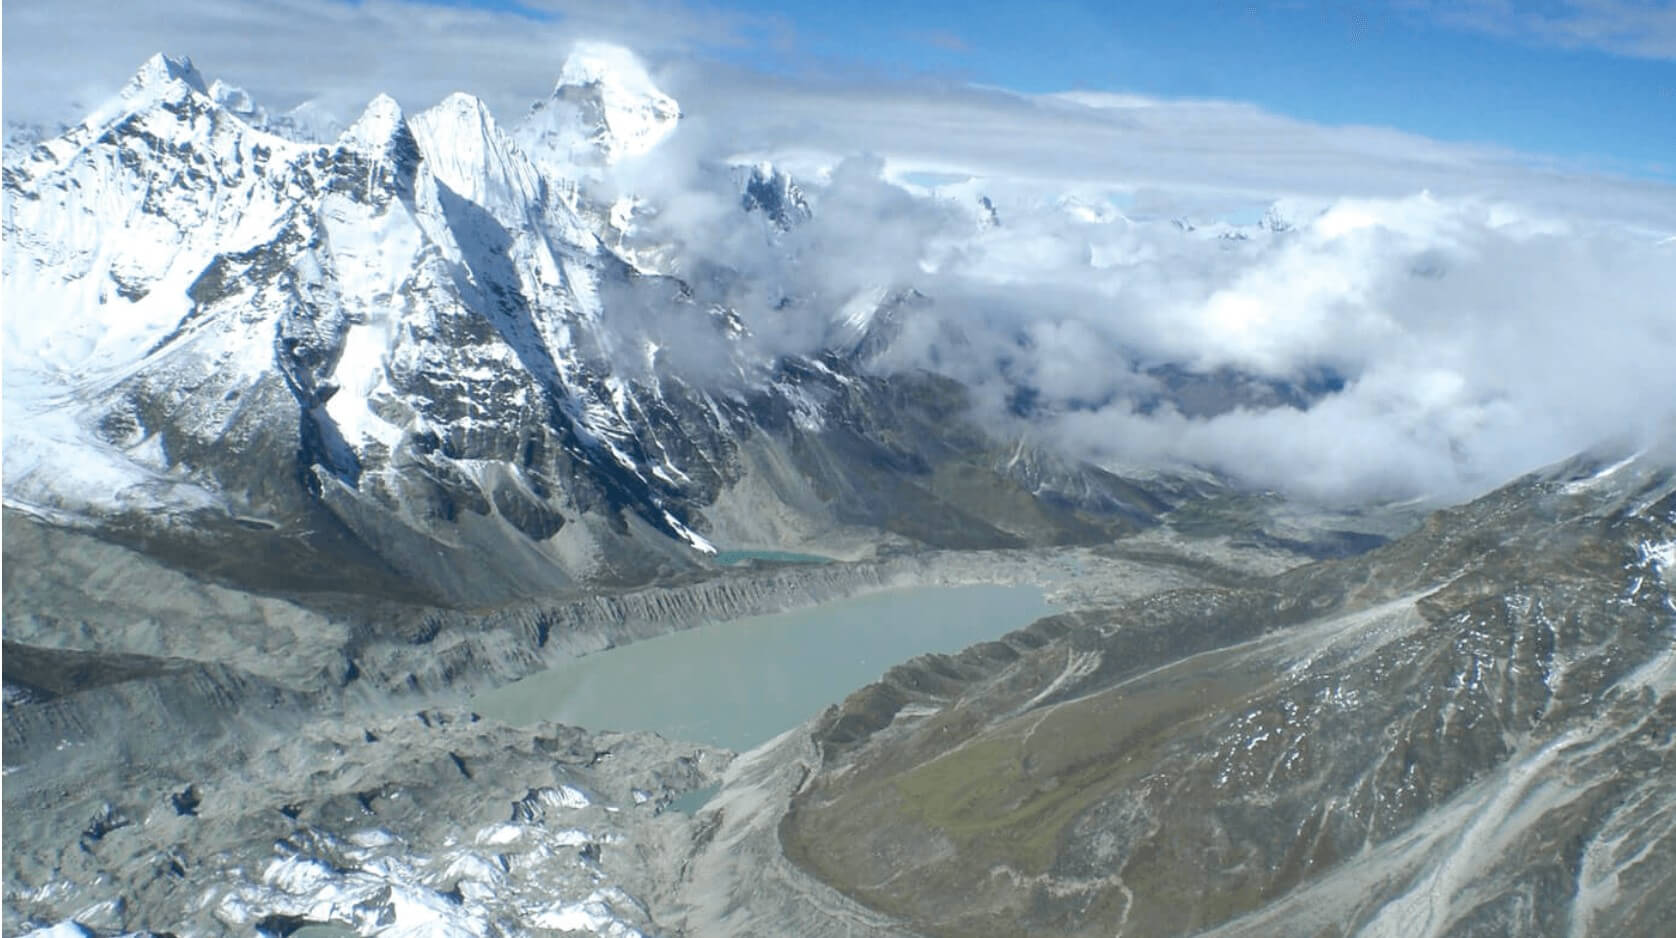 Two-thirds of Himalayan glaciers could melt by 2100